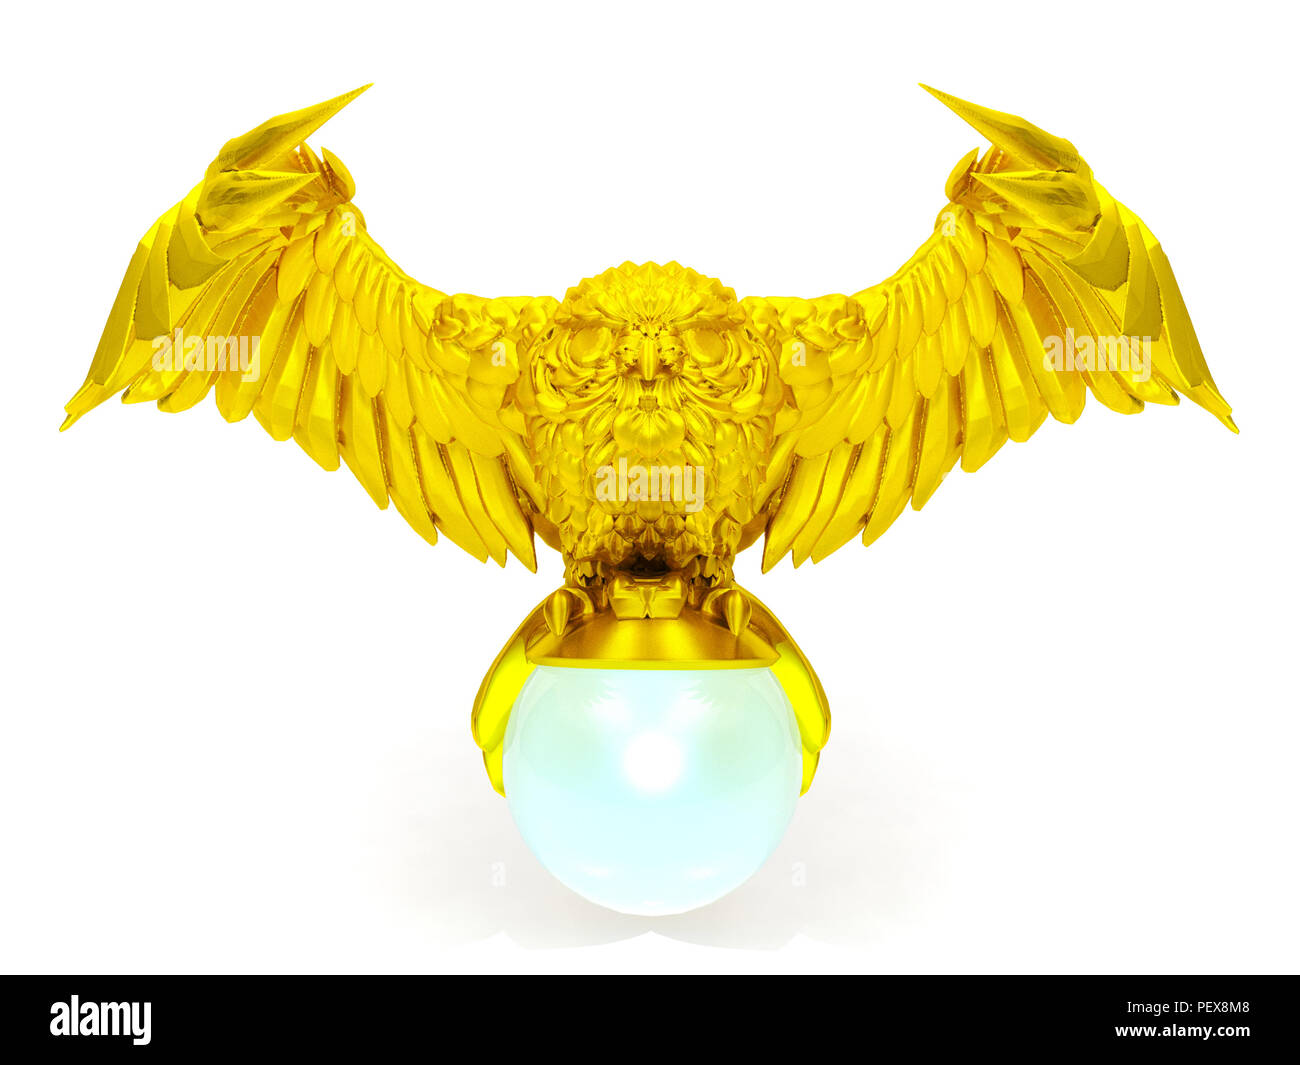 Golden owl figure and magical ball isolated on white background - Stock Image